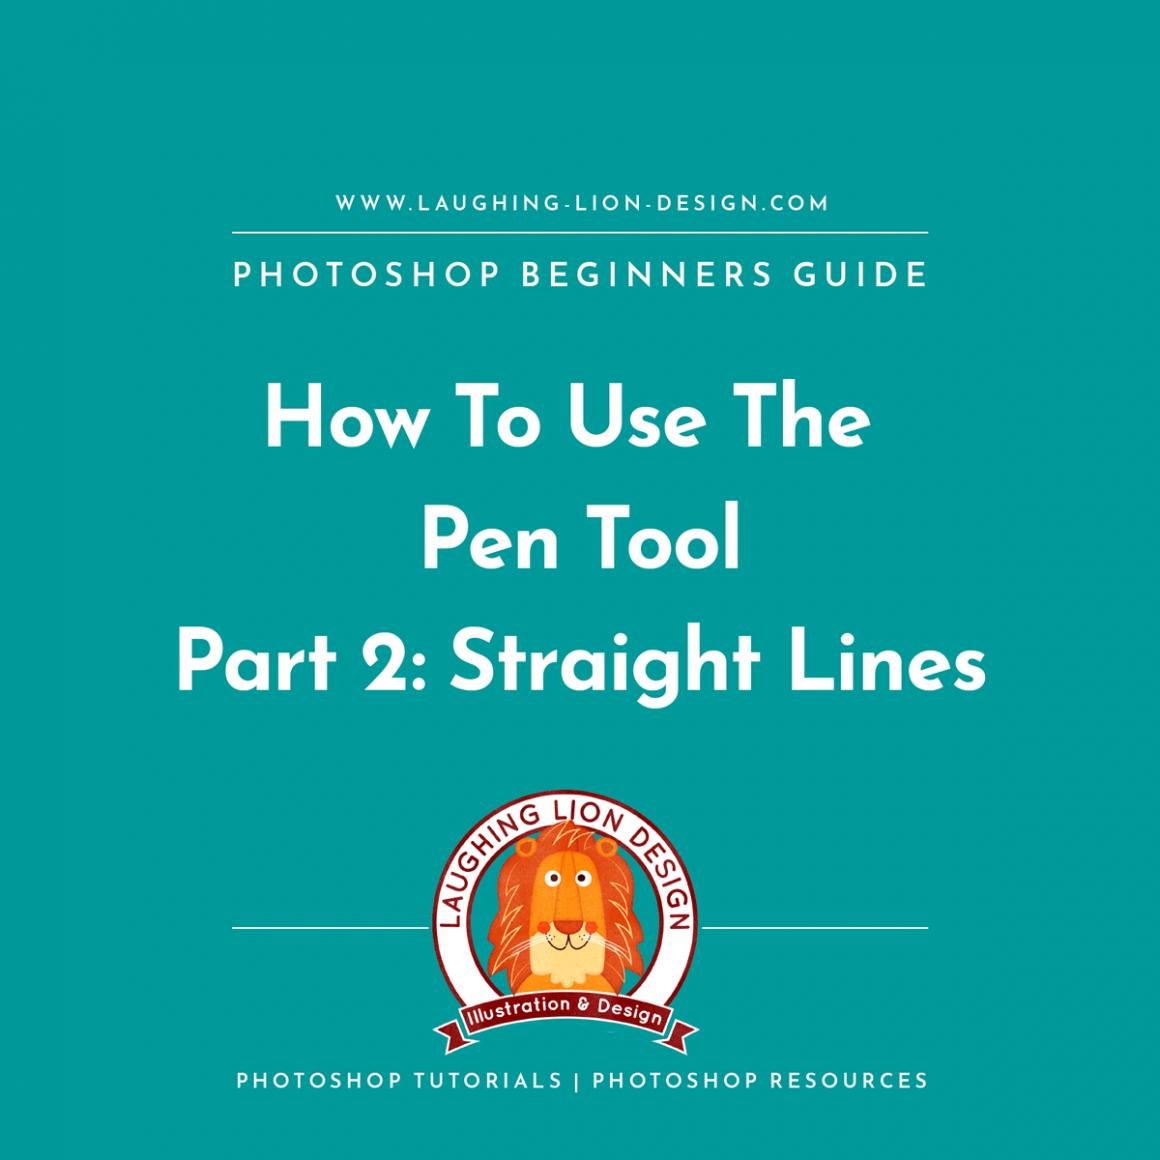 How-To-Use-The-Pen-Tool-In-Photoshop-Part-2-Laughing-Lion-Design